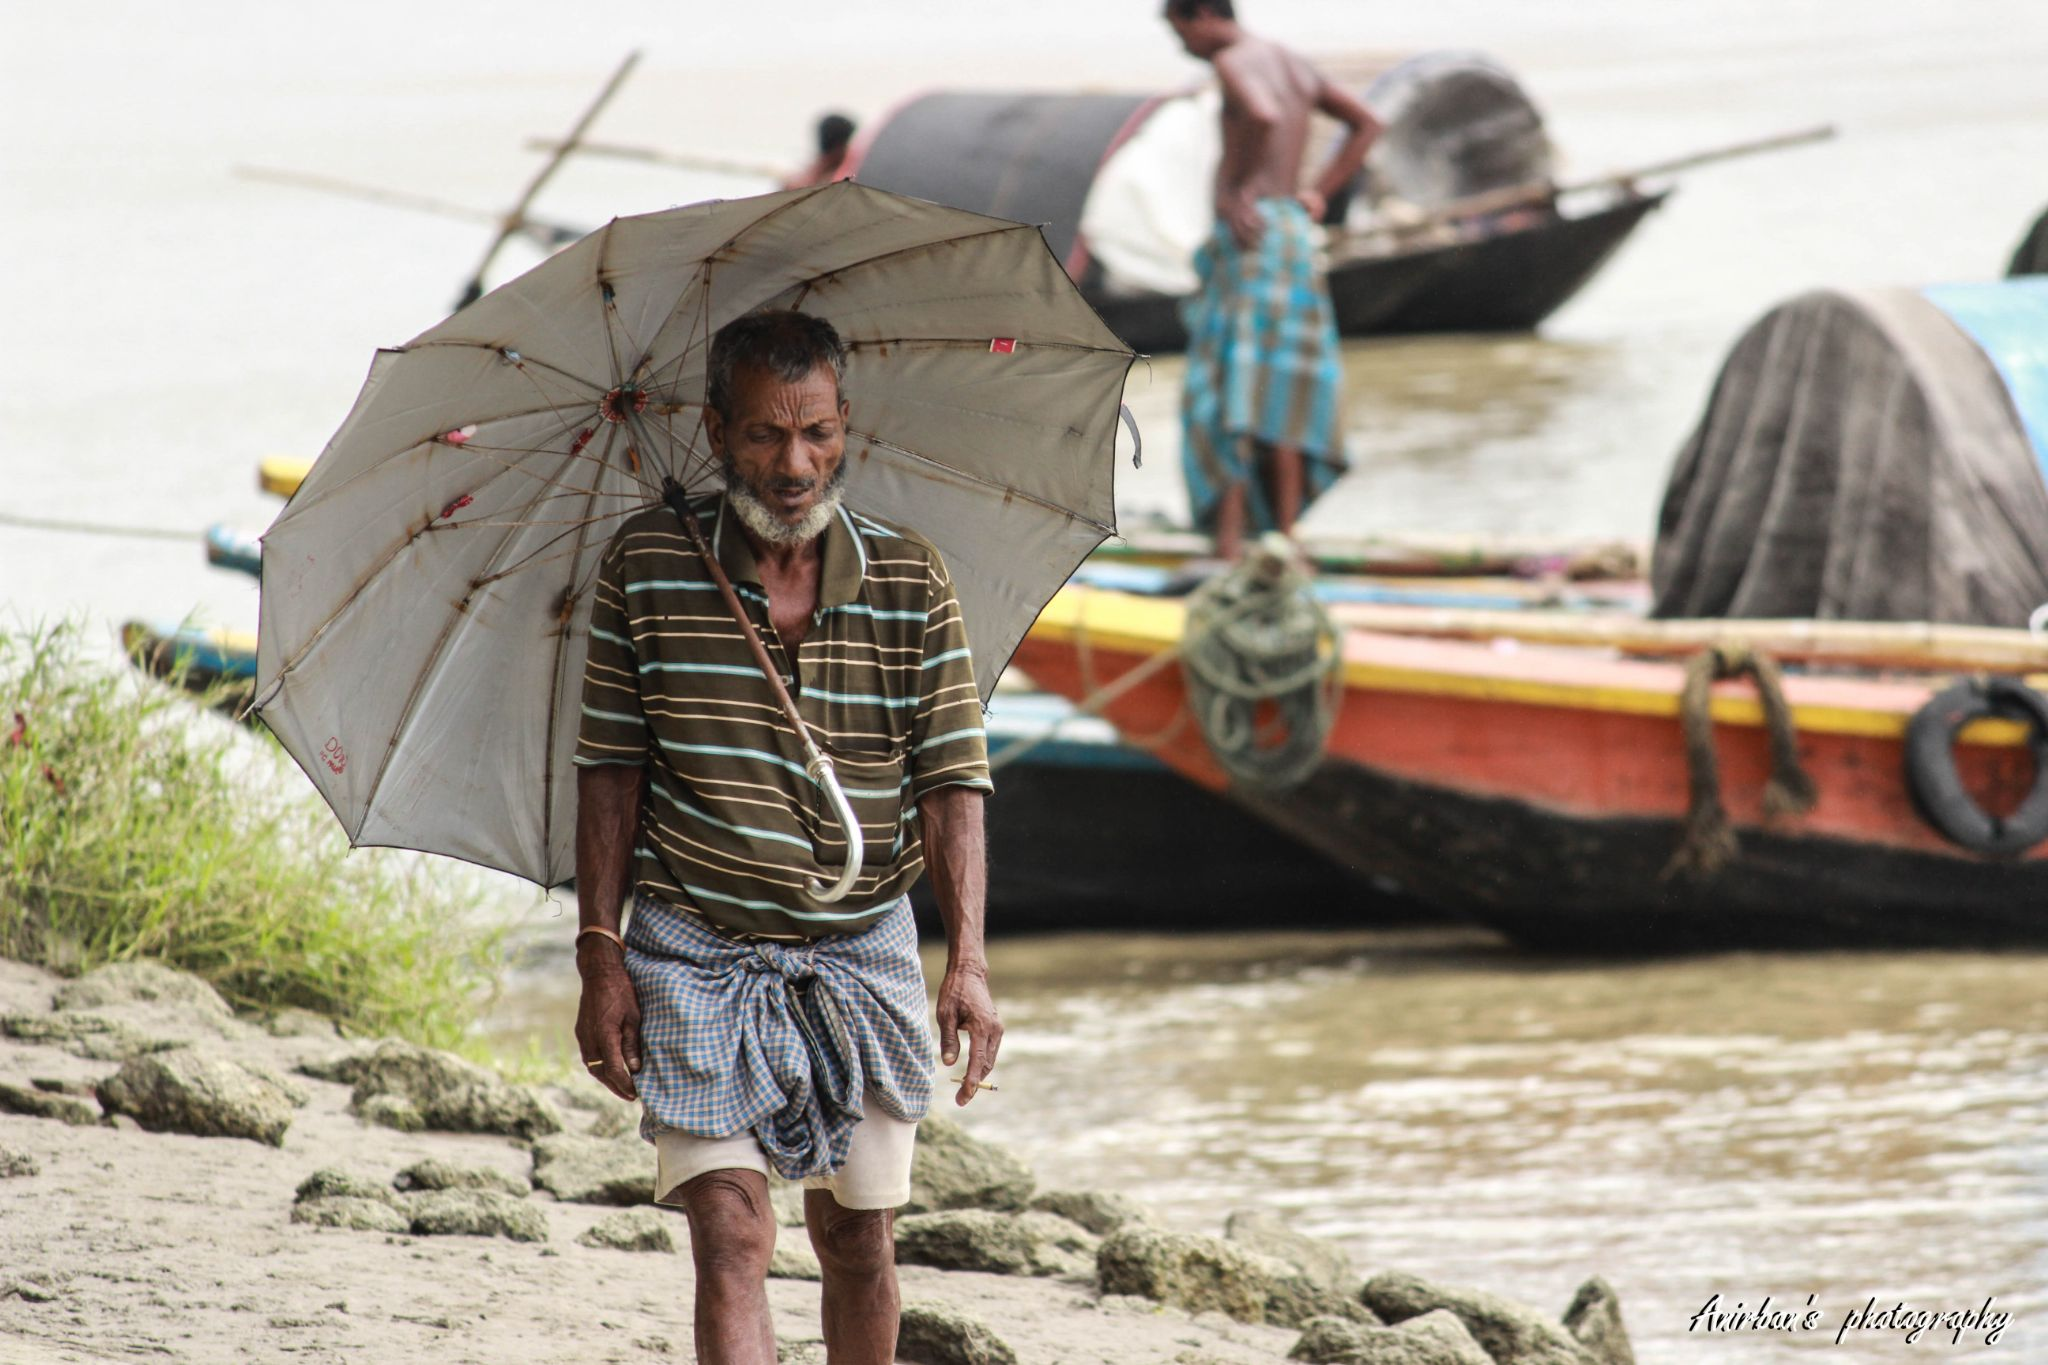 The harsh shades of a bright life by Anirban Banerjee